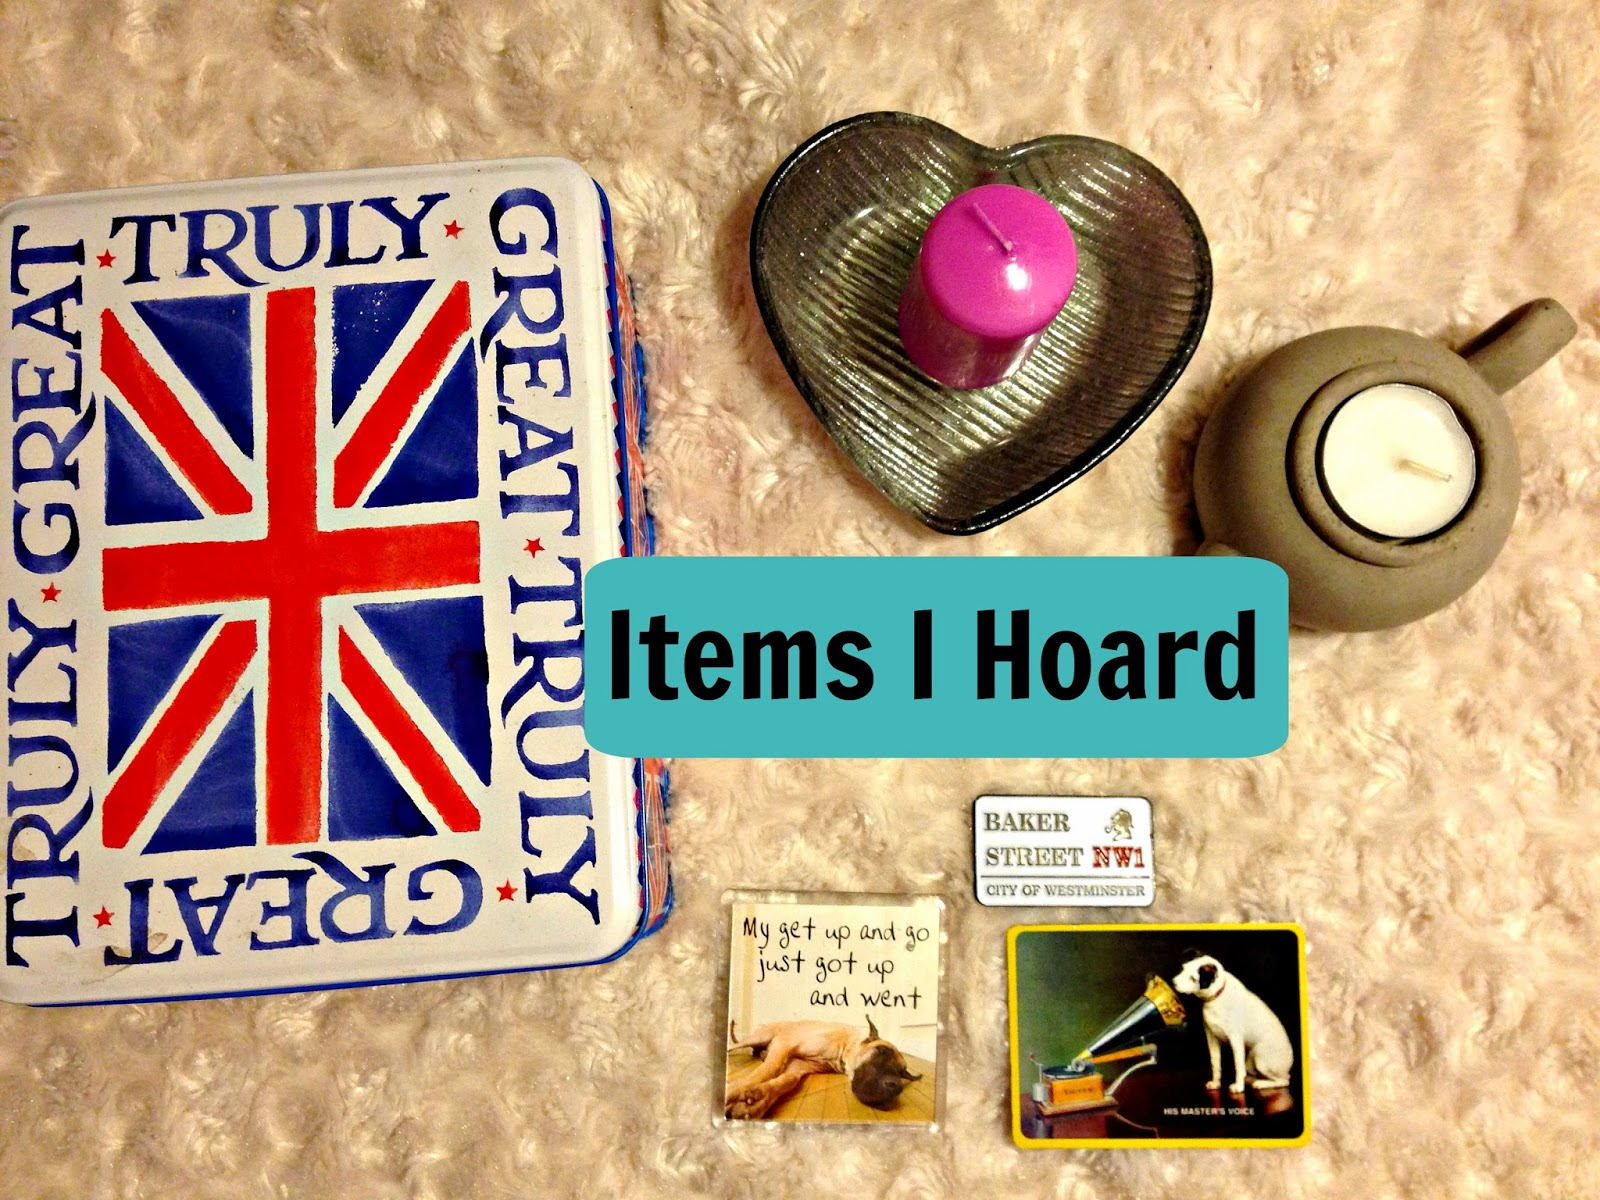 Items I Hoard